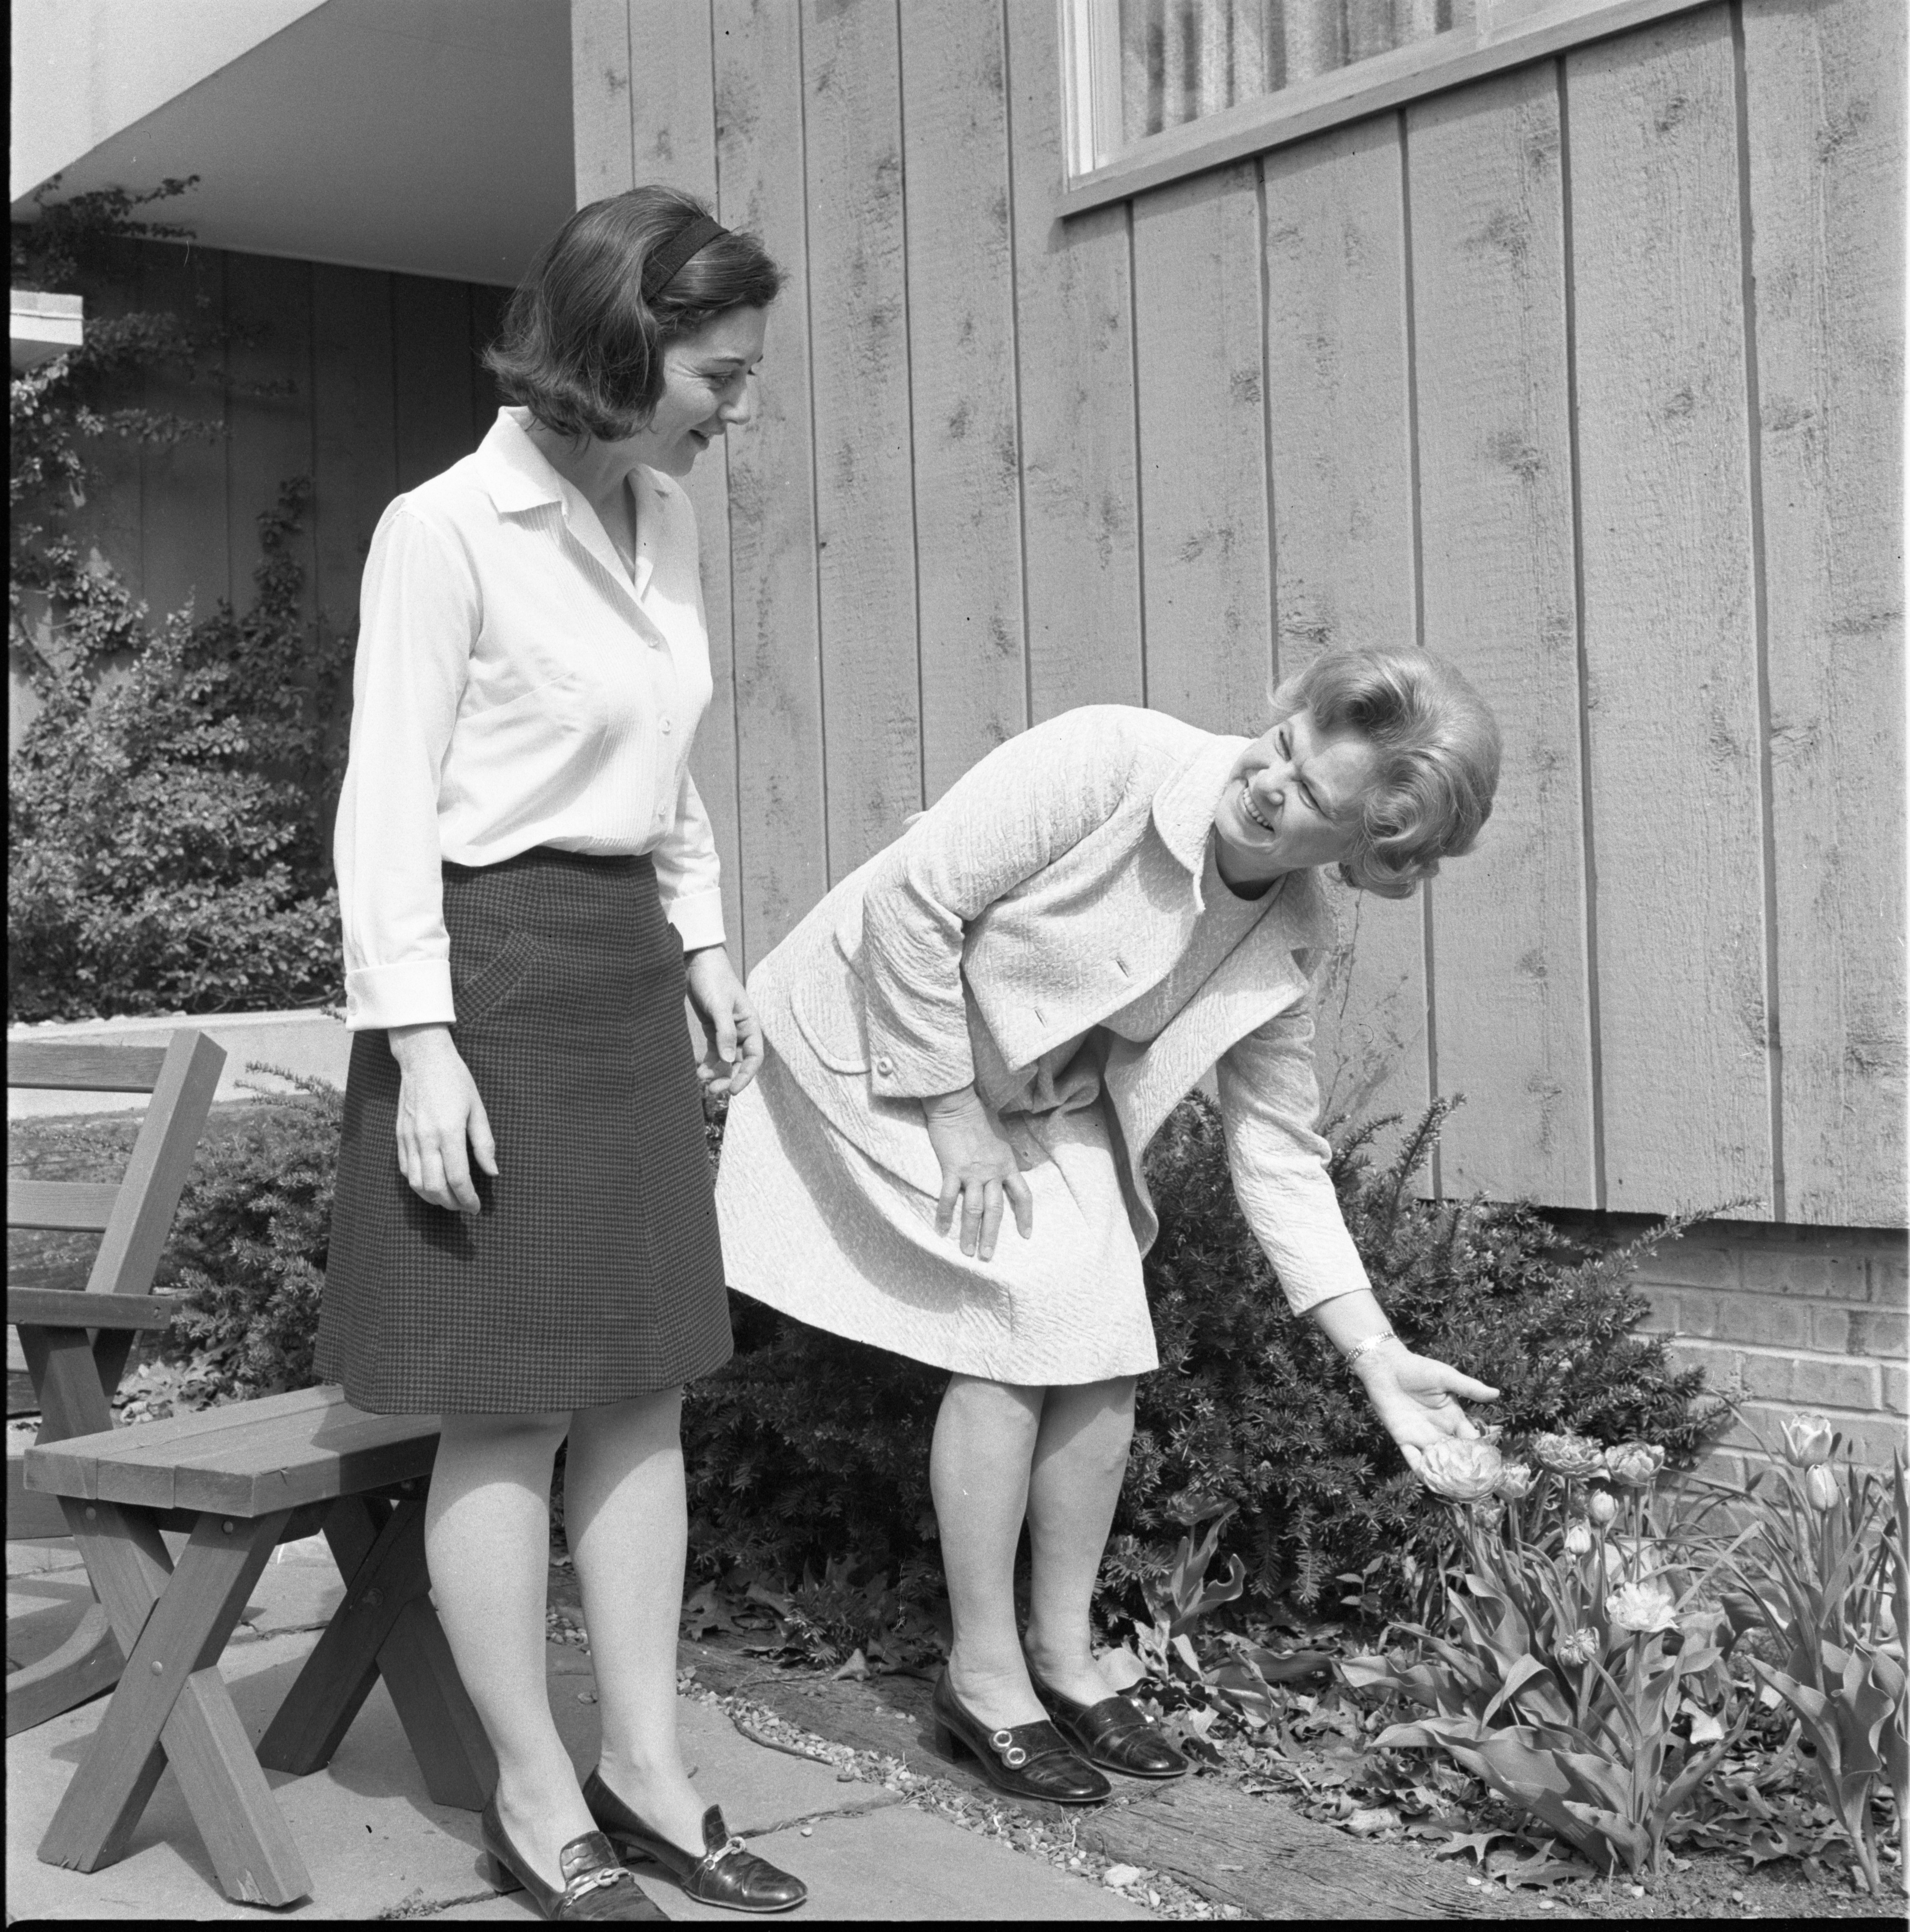 Cynthia Cross & Ann Joiner Admire Flowers Outside The Joiner Home, May 1971 image